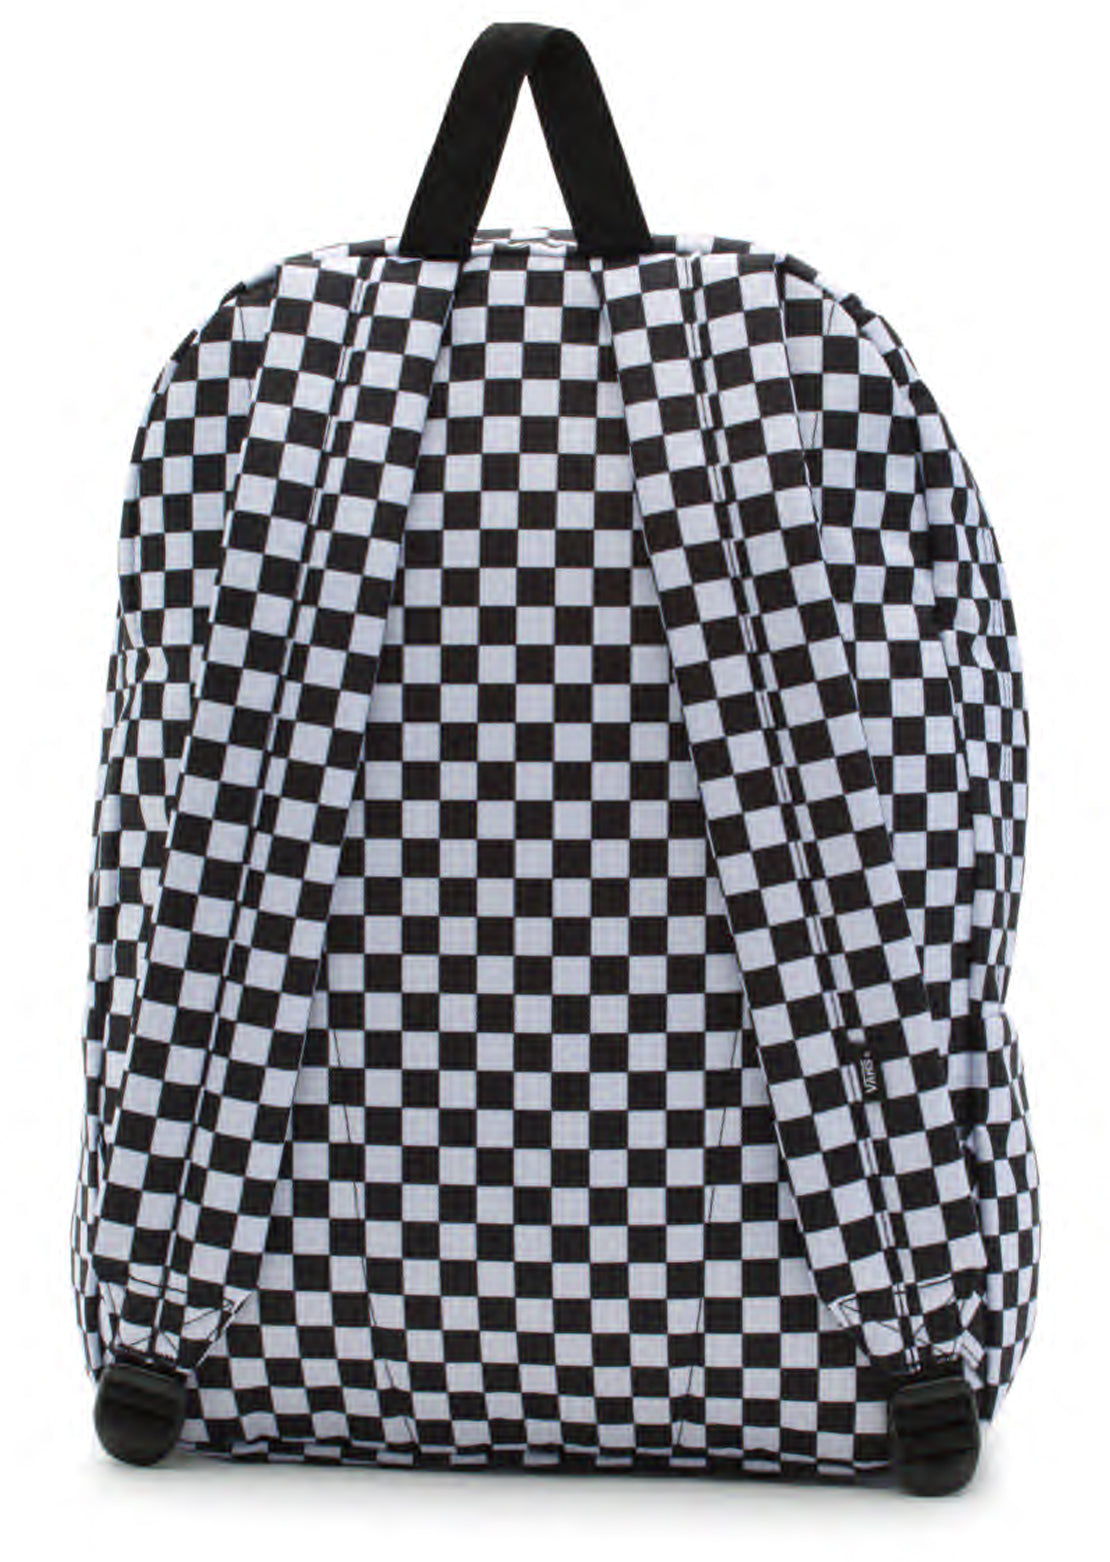 Vans Men's Old Skool III Backpack Black/White Check